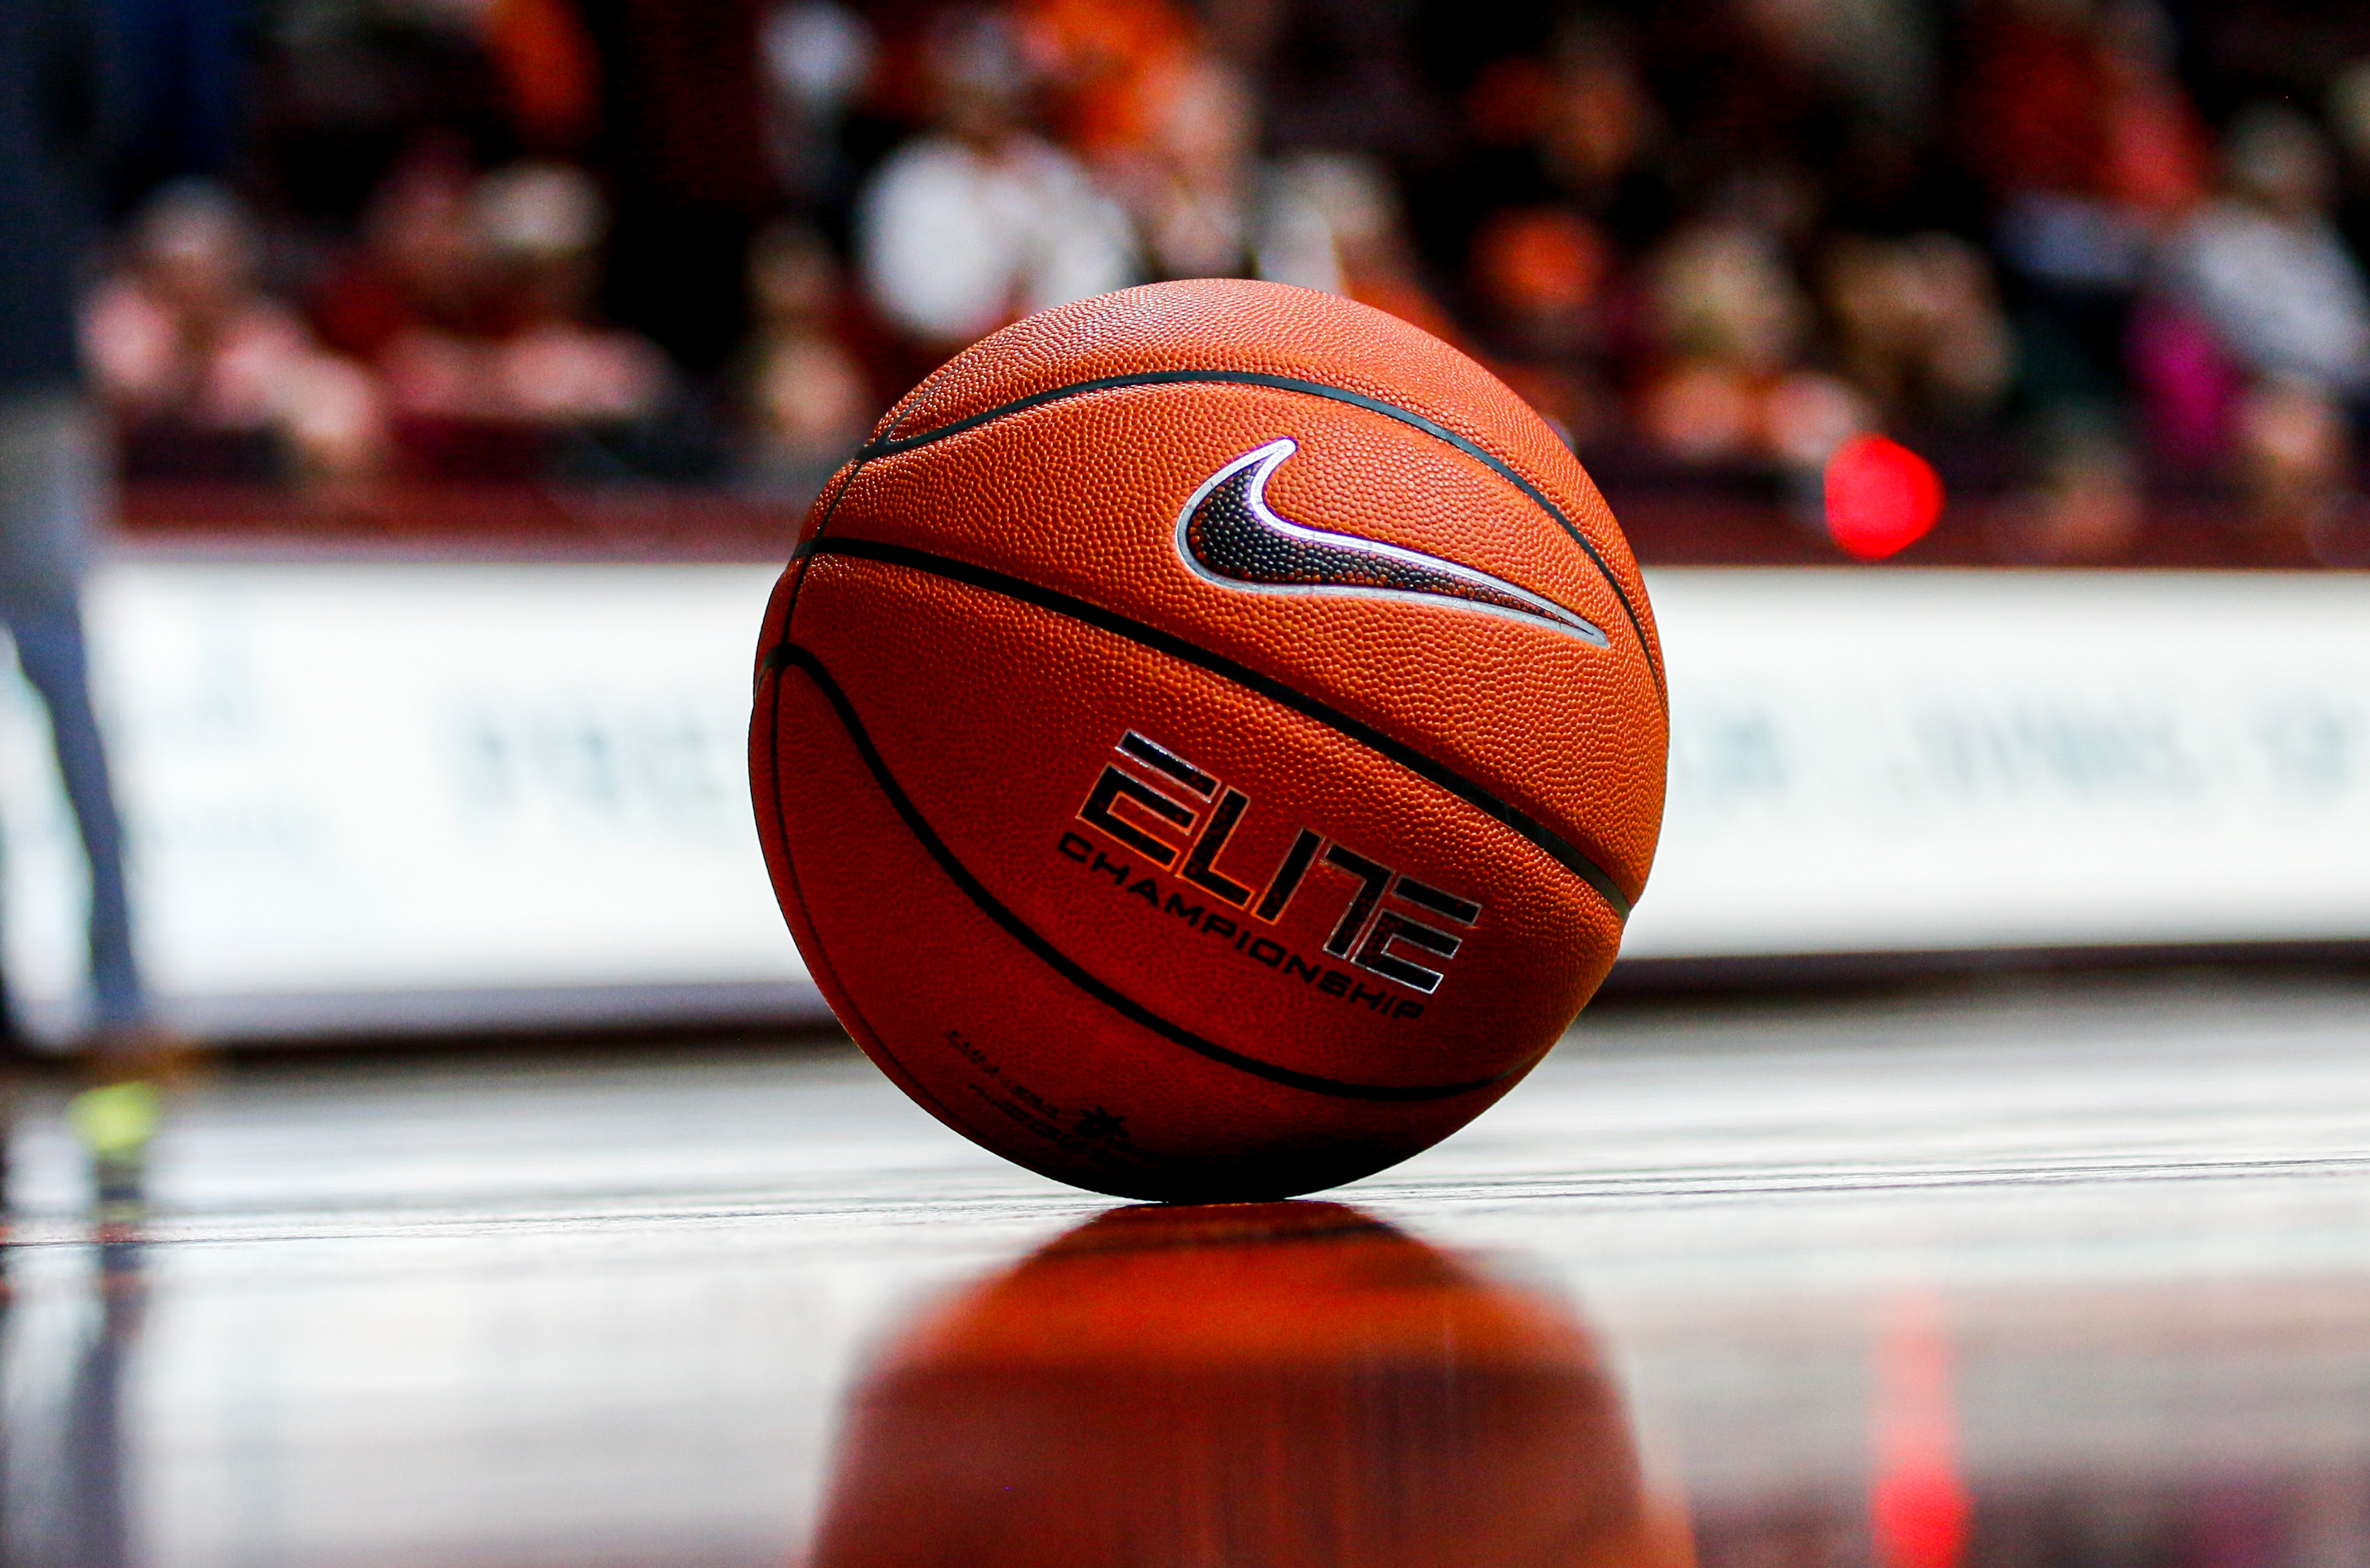 Virginia Tech vs. Virginia Women's Basketball Game Postponed